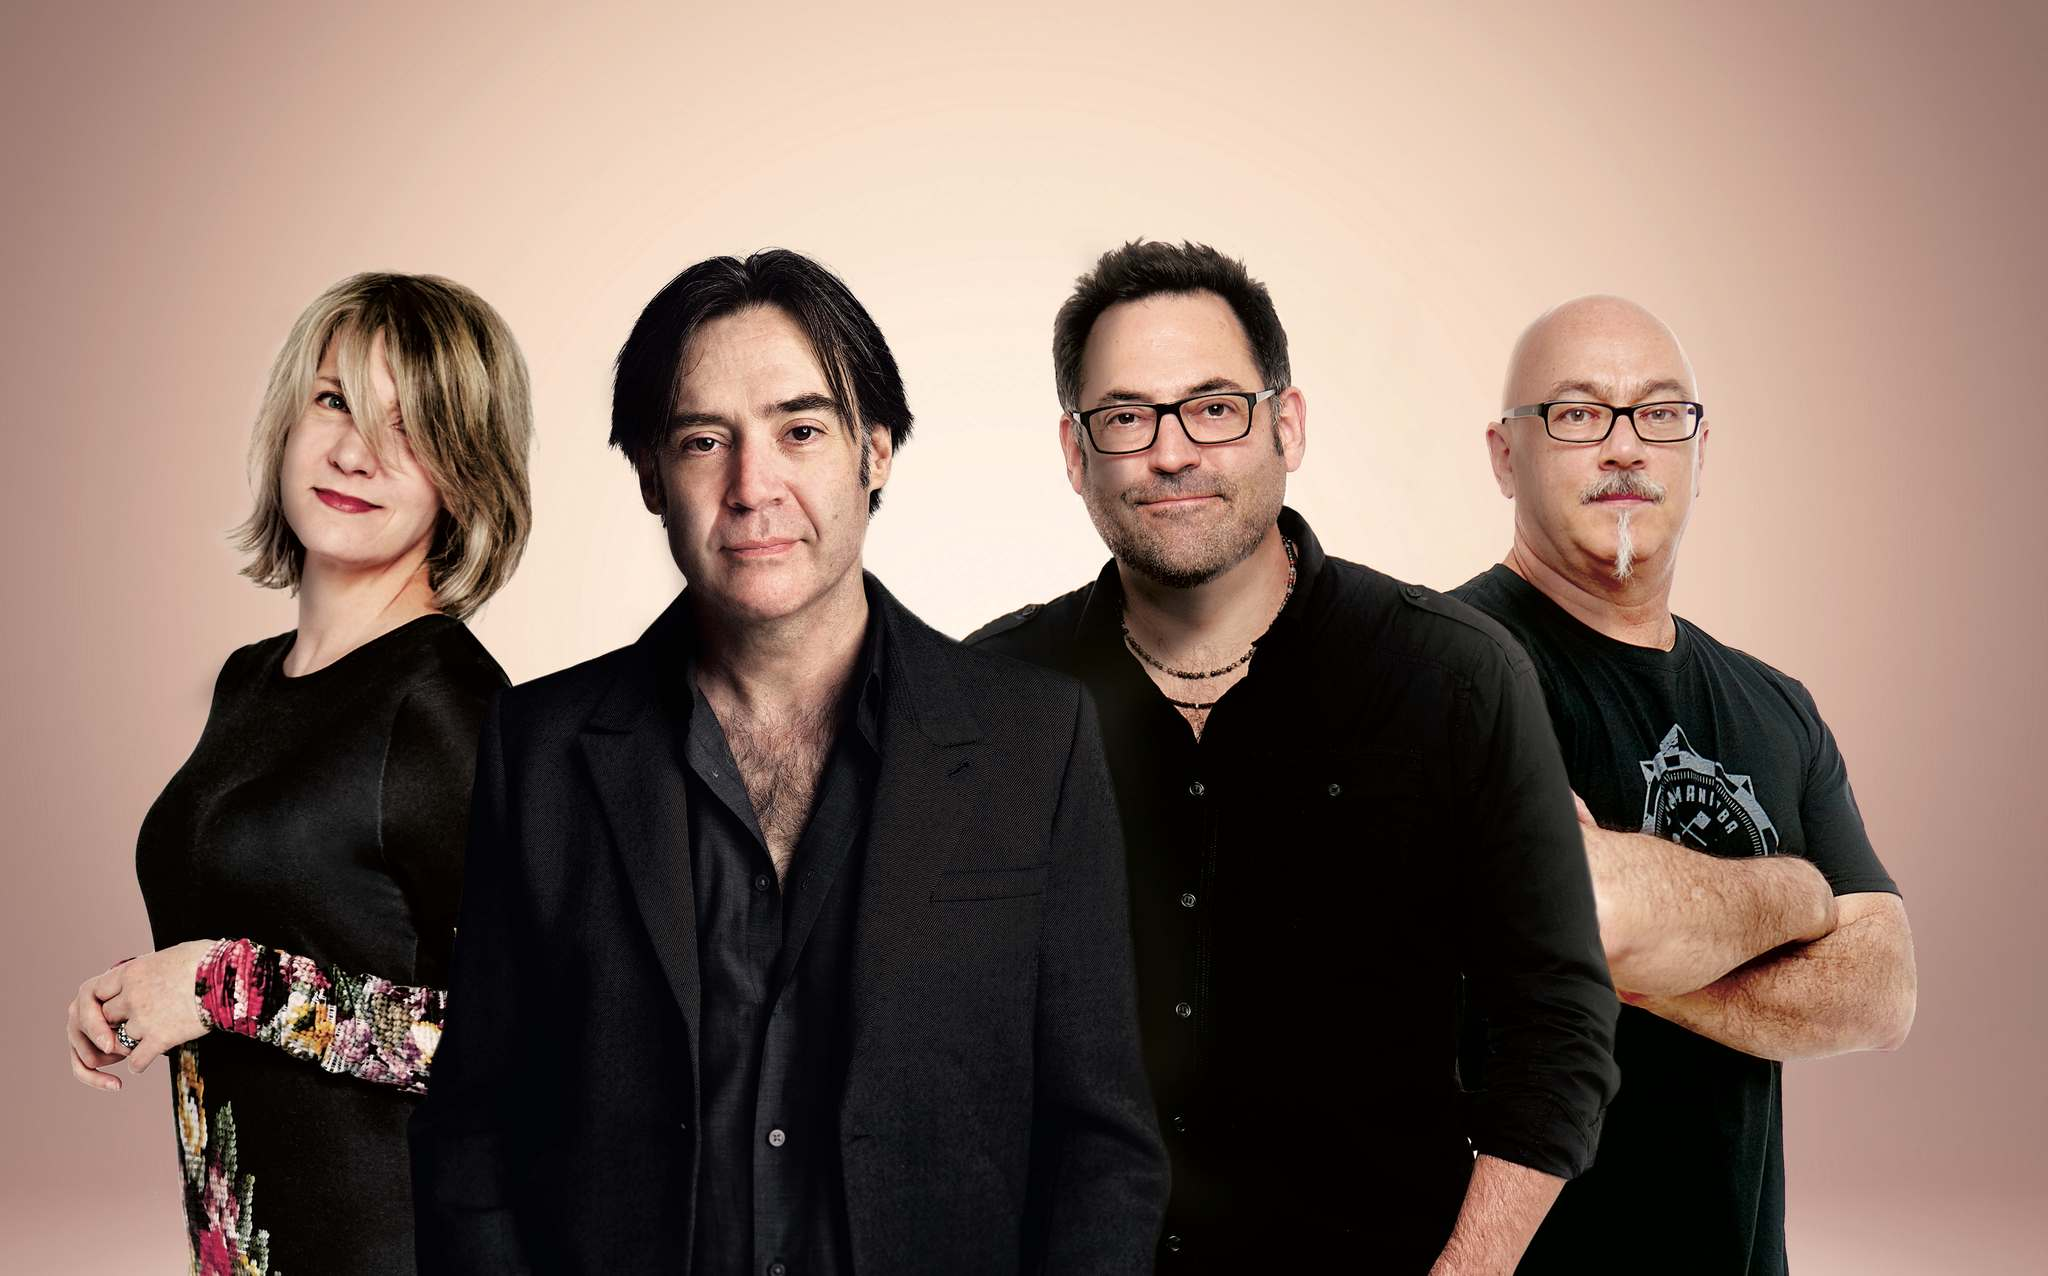 The Crash Test Dummies play the Main Stage on June 22. (Supplied)